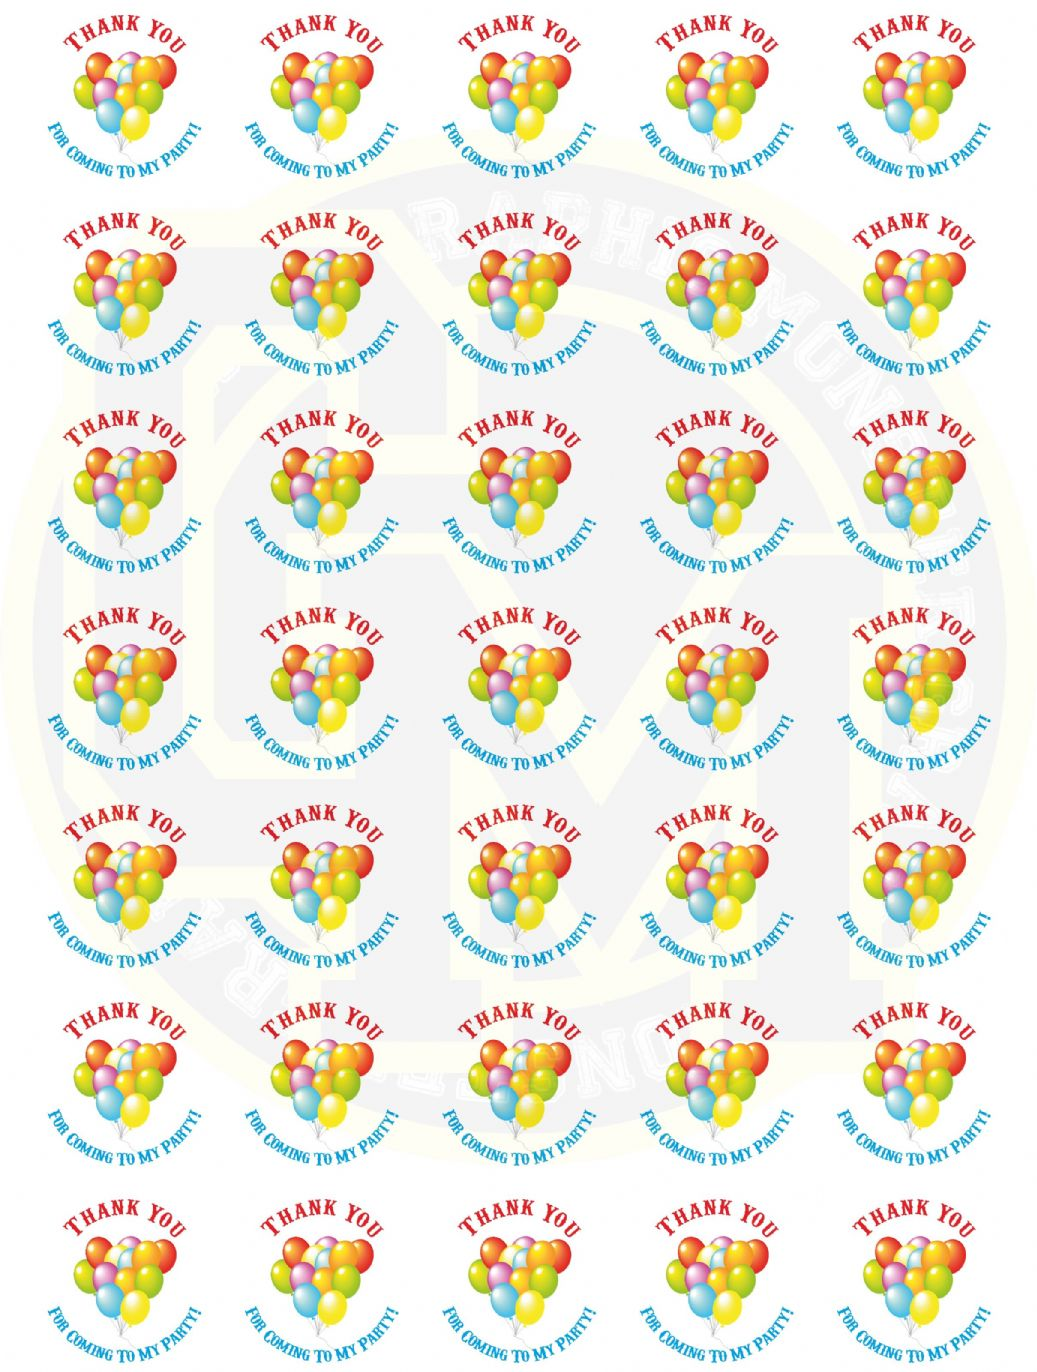 thank you stickers for birthday ; unisex-birthday-stickers-37mm-round-paper-thank-you-for-coming-to-my-party-3878-p